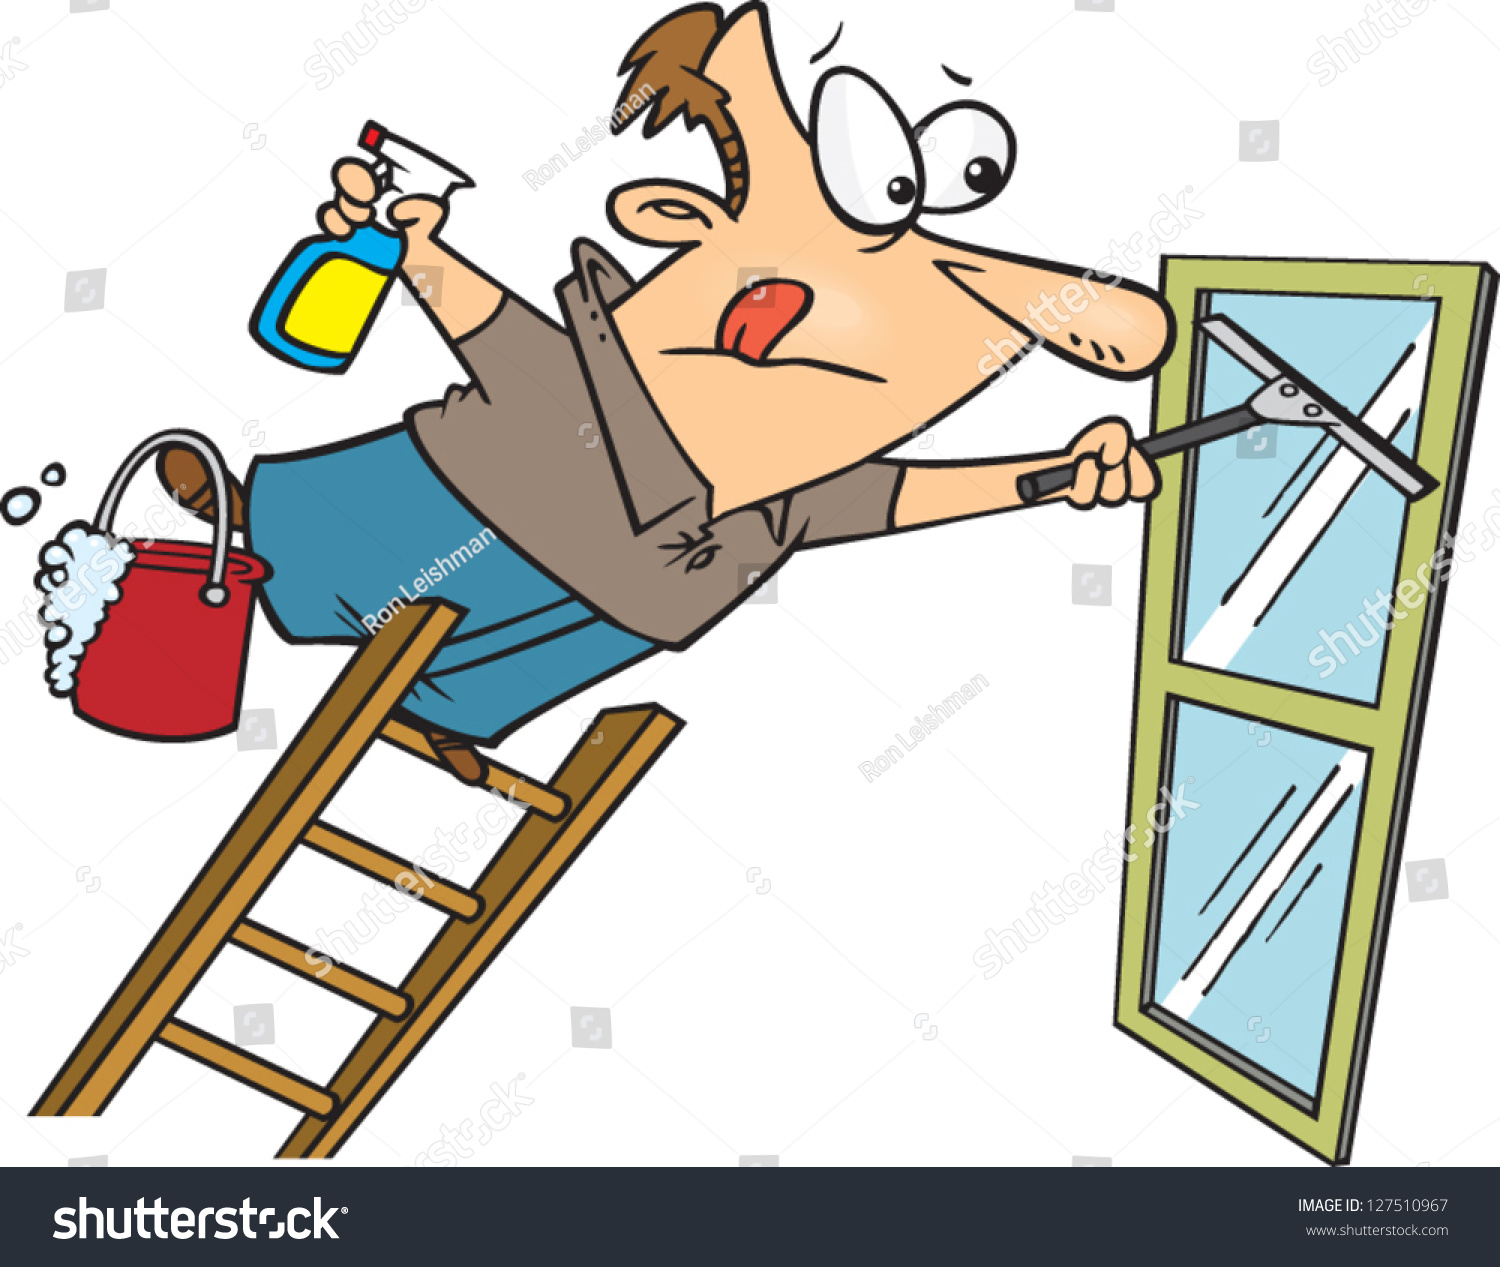 clip art illustrations cleaning - photo #15